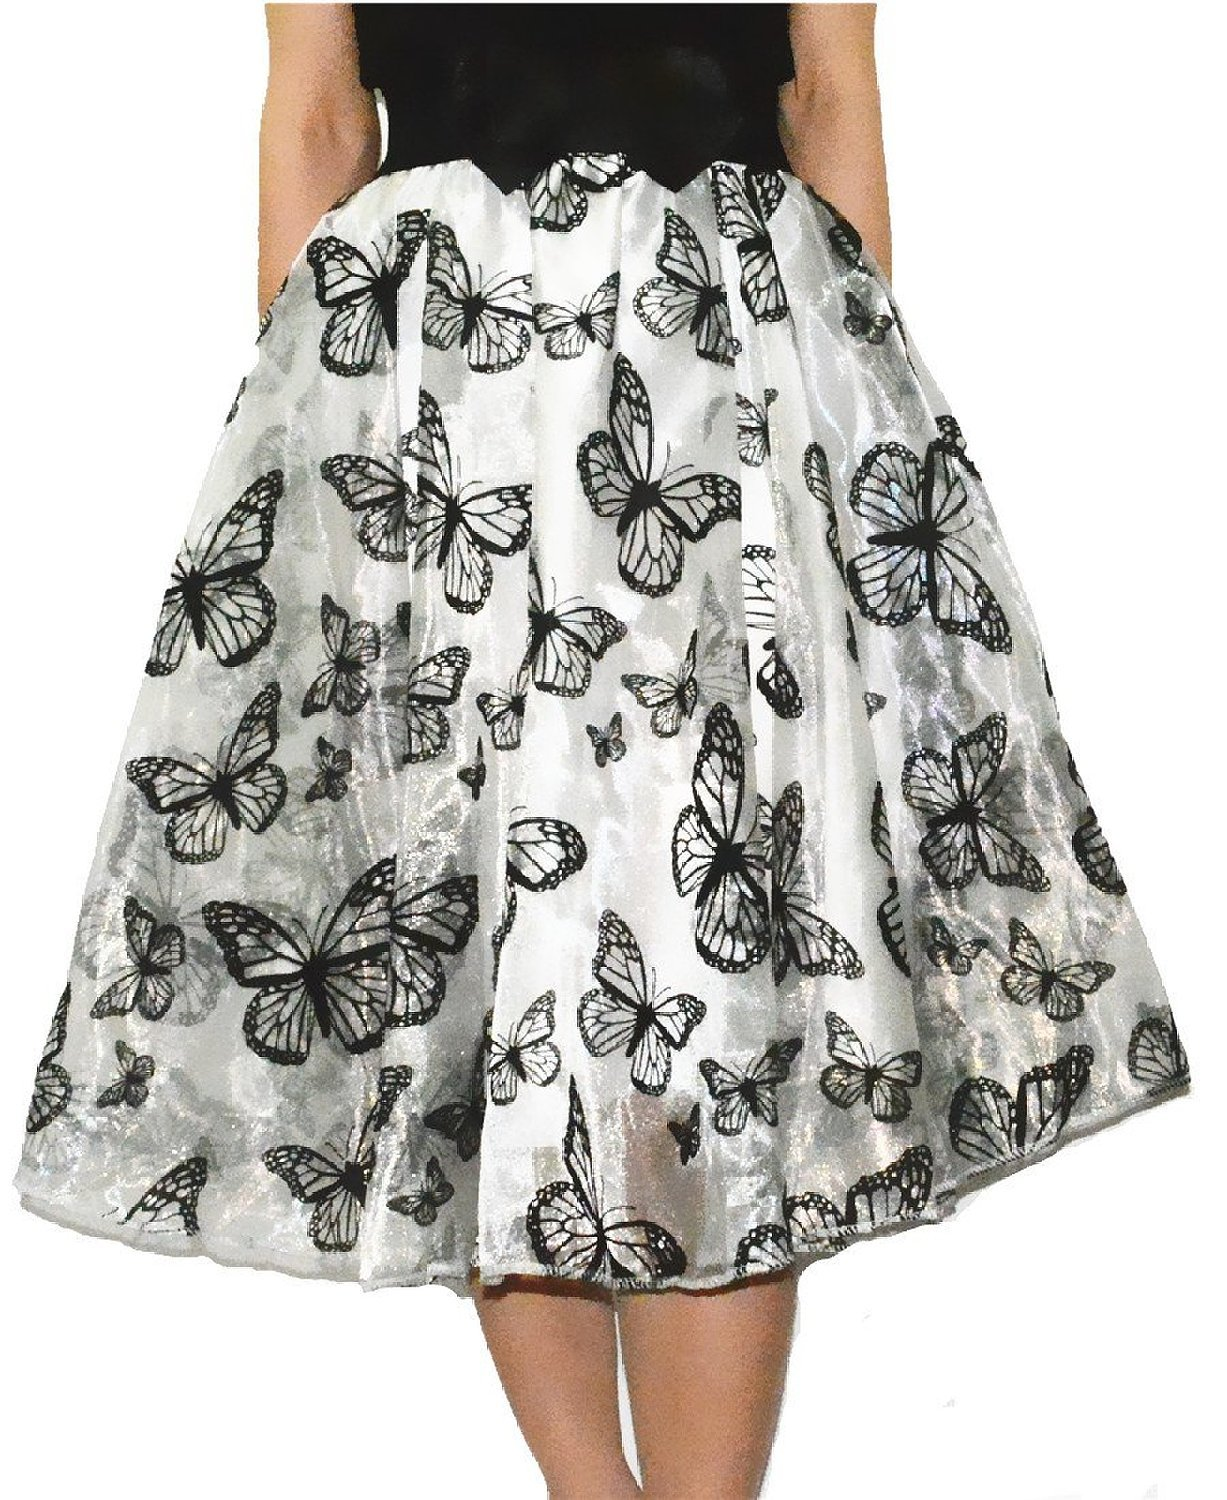 Jojobaby Lady's Organza Princess Skirt Bowknot Pleated Midi/ Knee Length Skirts (Butterfly White)